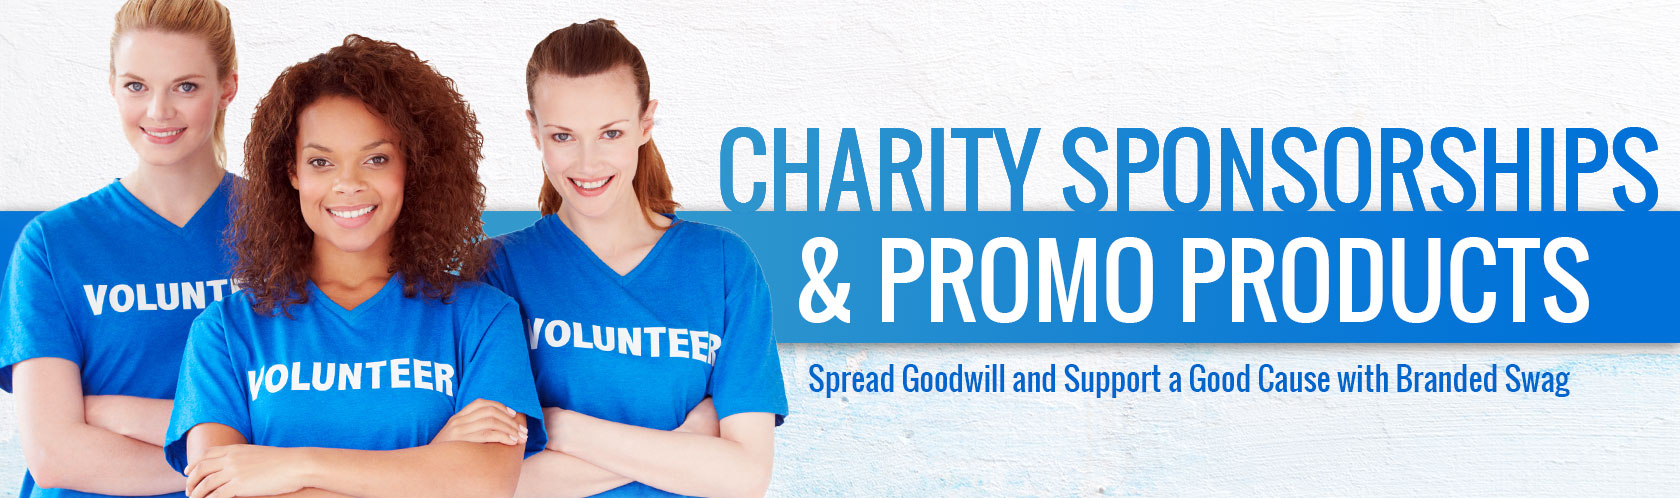 Charity Sponsorships and Promo Products